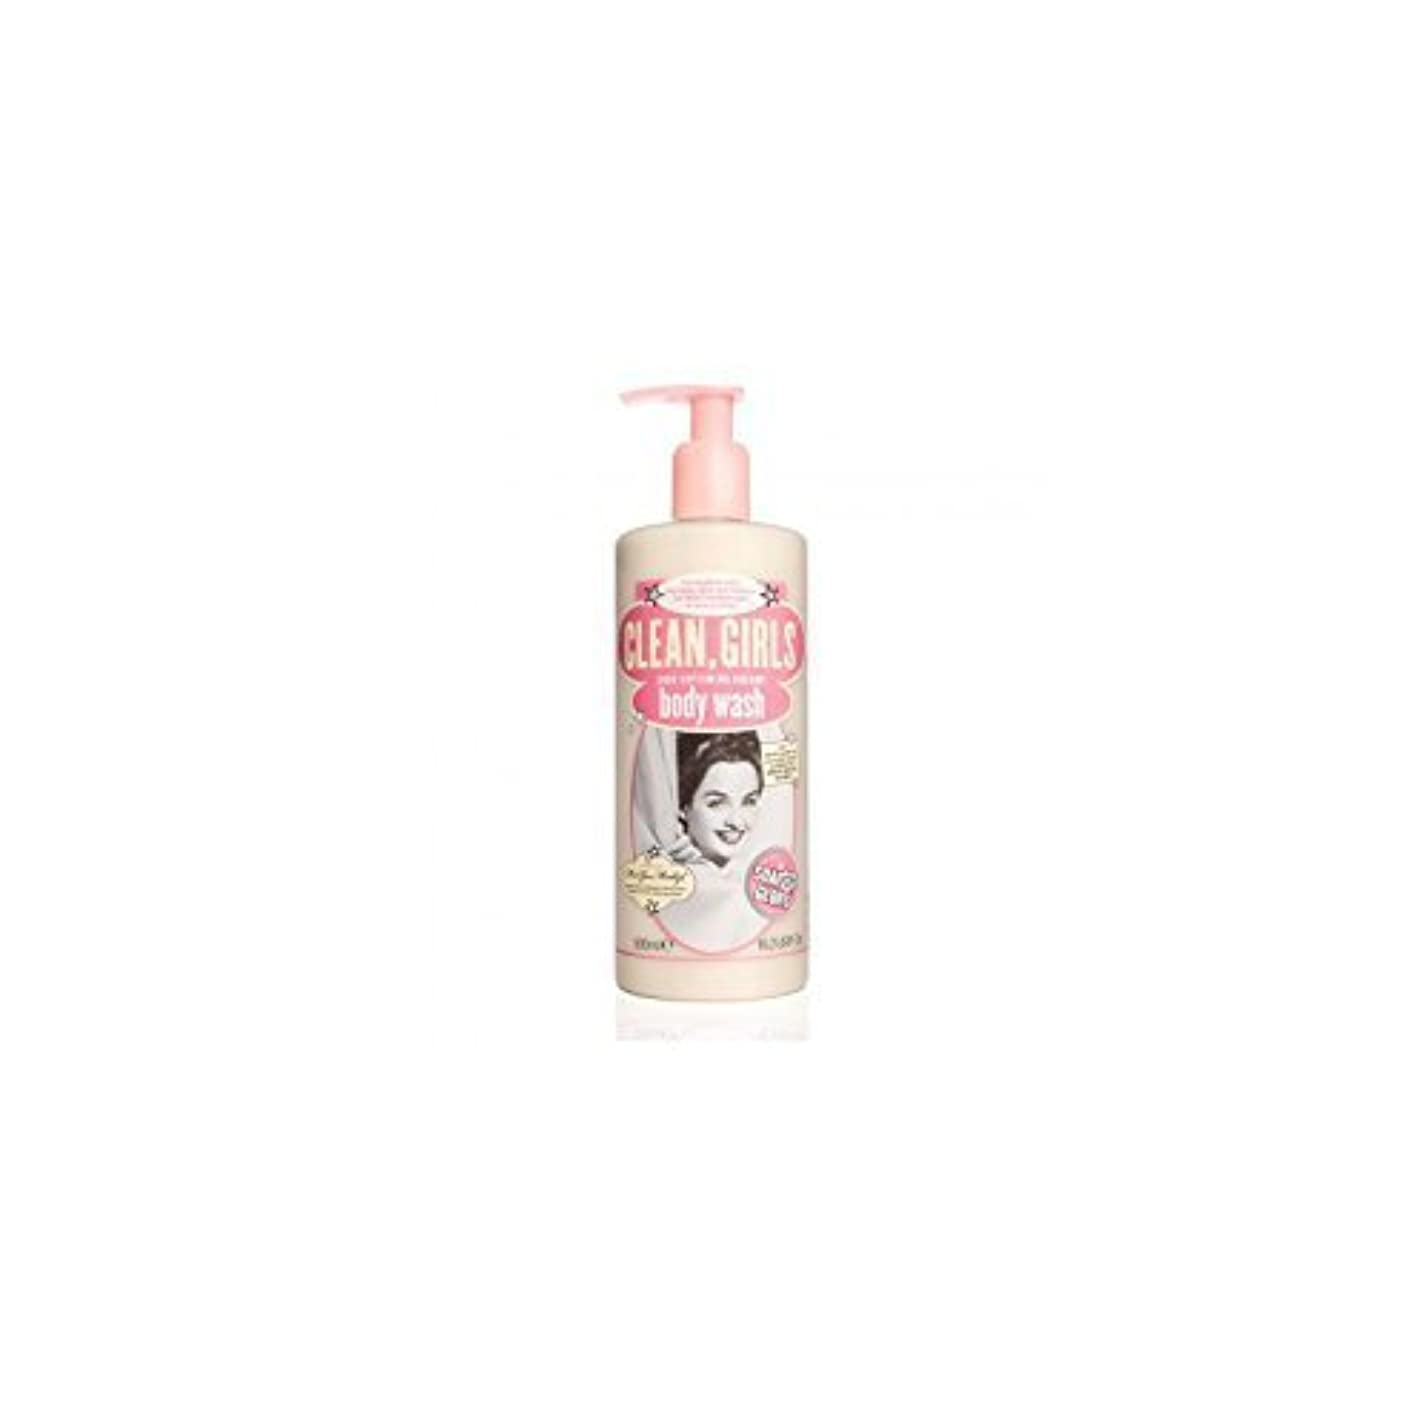 ハウジング切り刻むおもしろいSoap & Glory Clean Girls Body Wash 500ml by Trifing